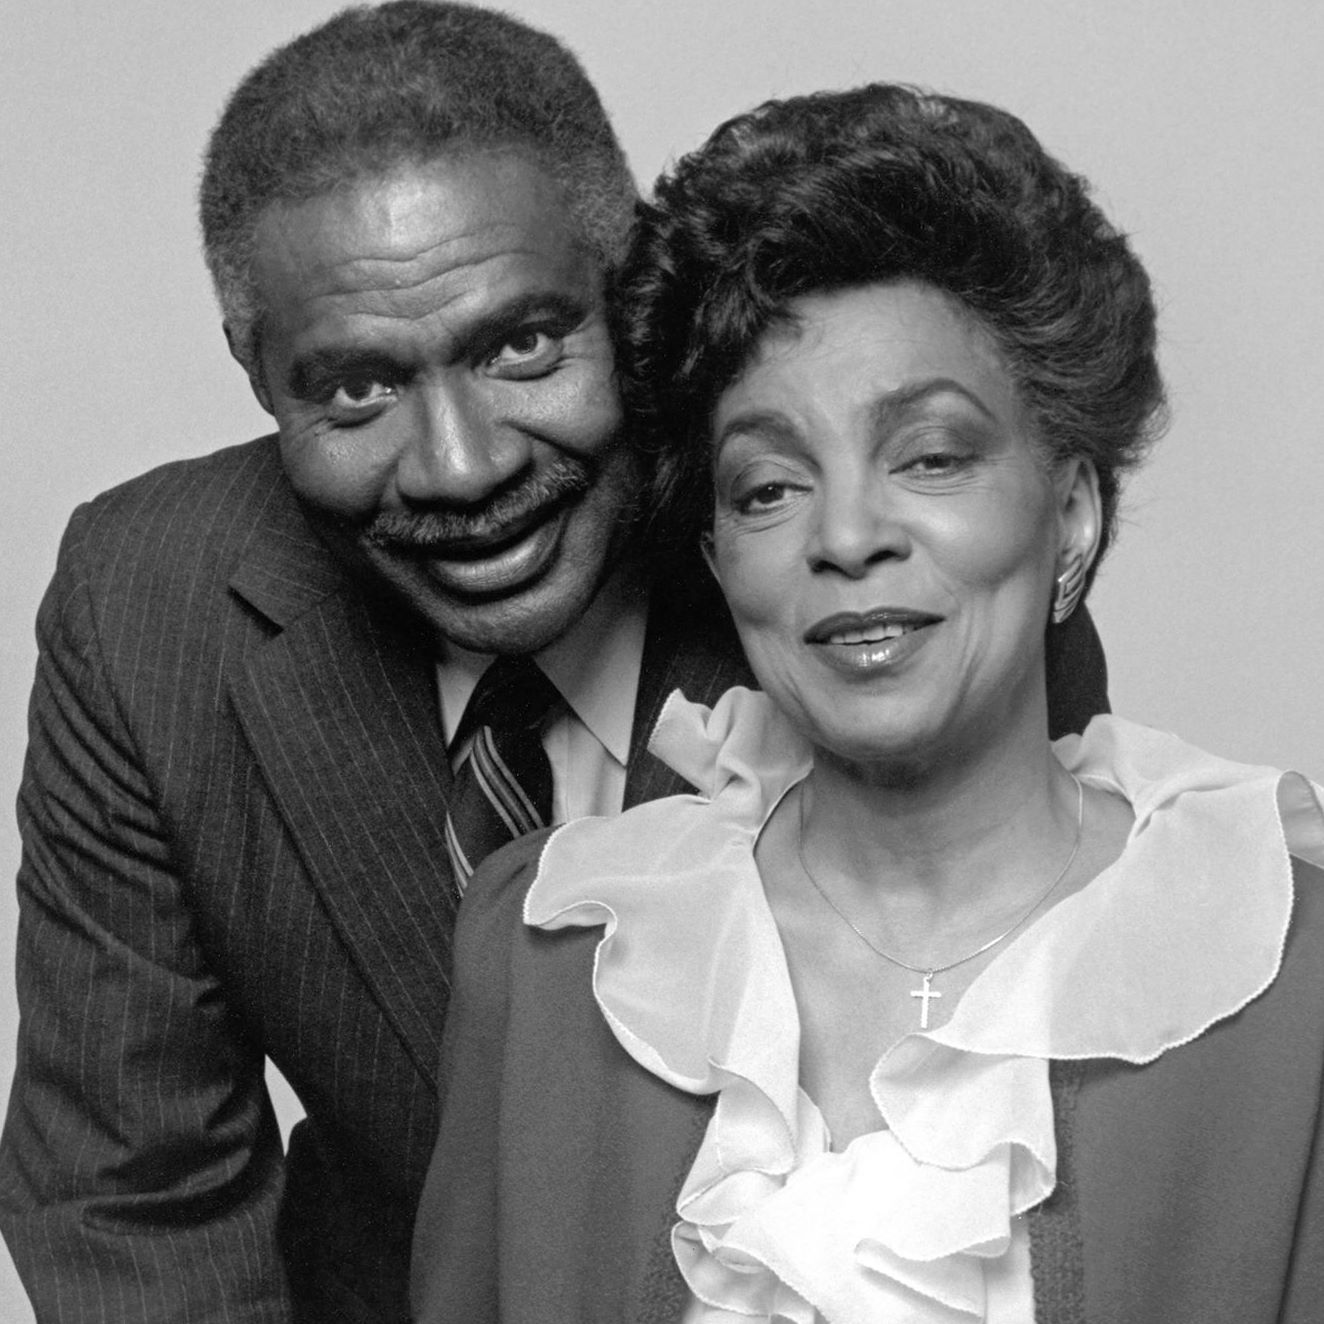 Intersection in Harlem Renamed in Honor of Acting Legends and Activists Ruby Dee and Ossie Davis